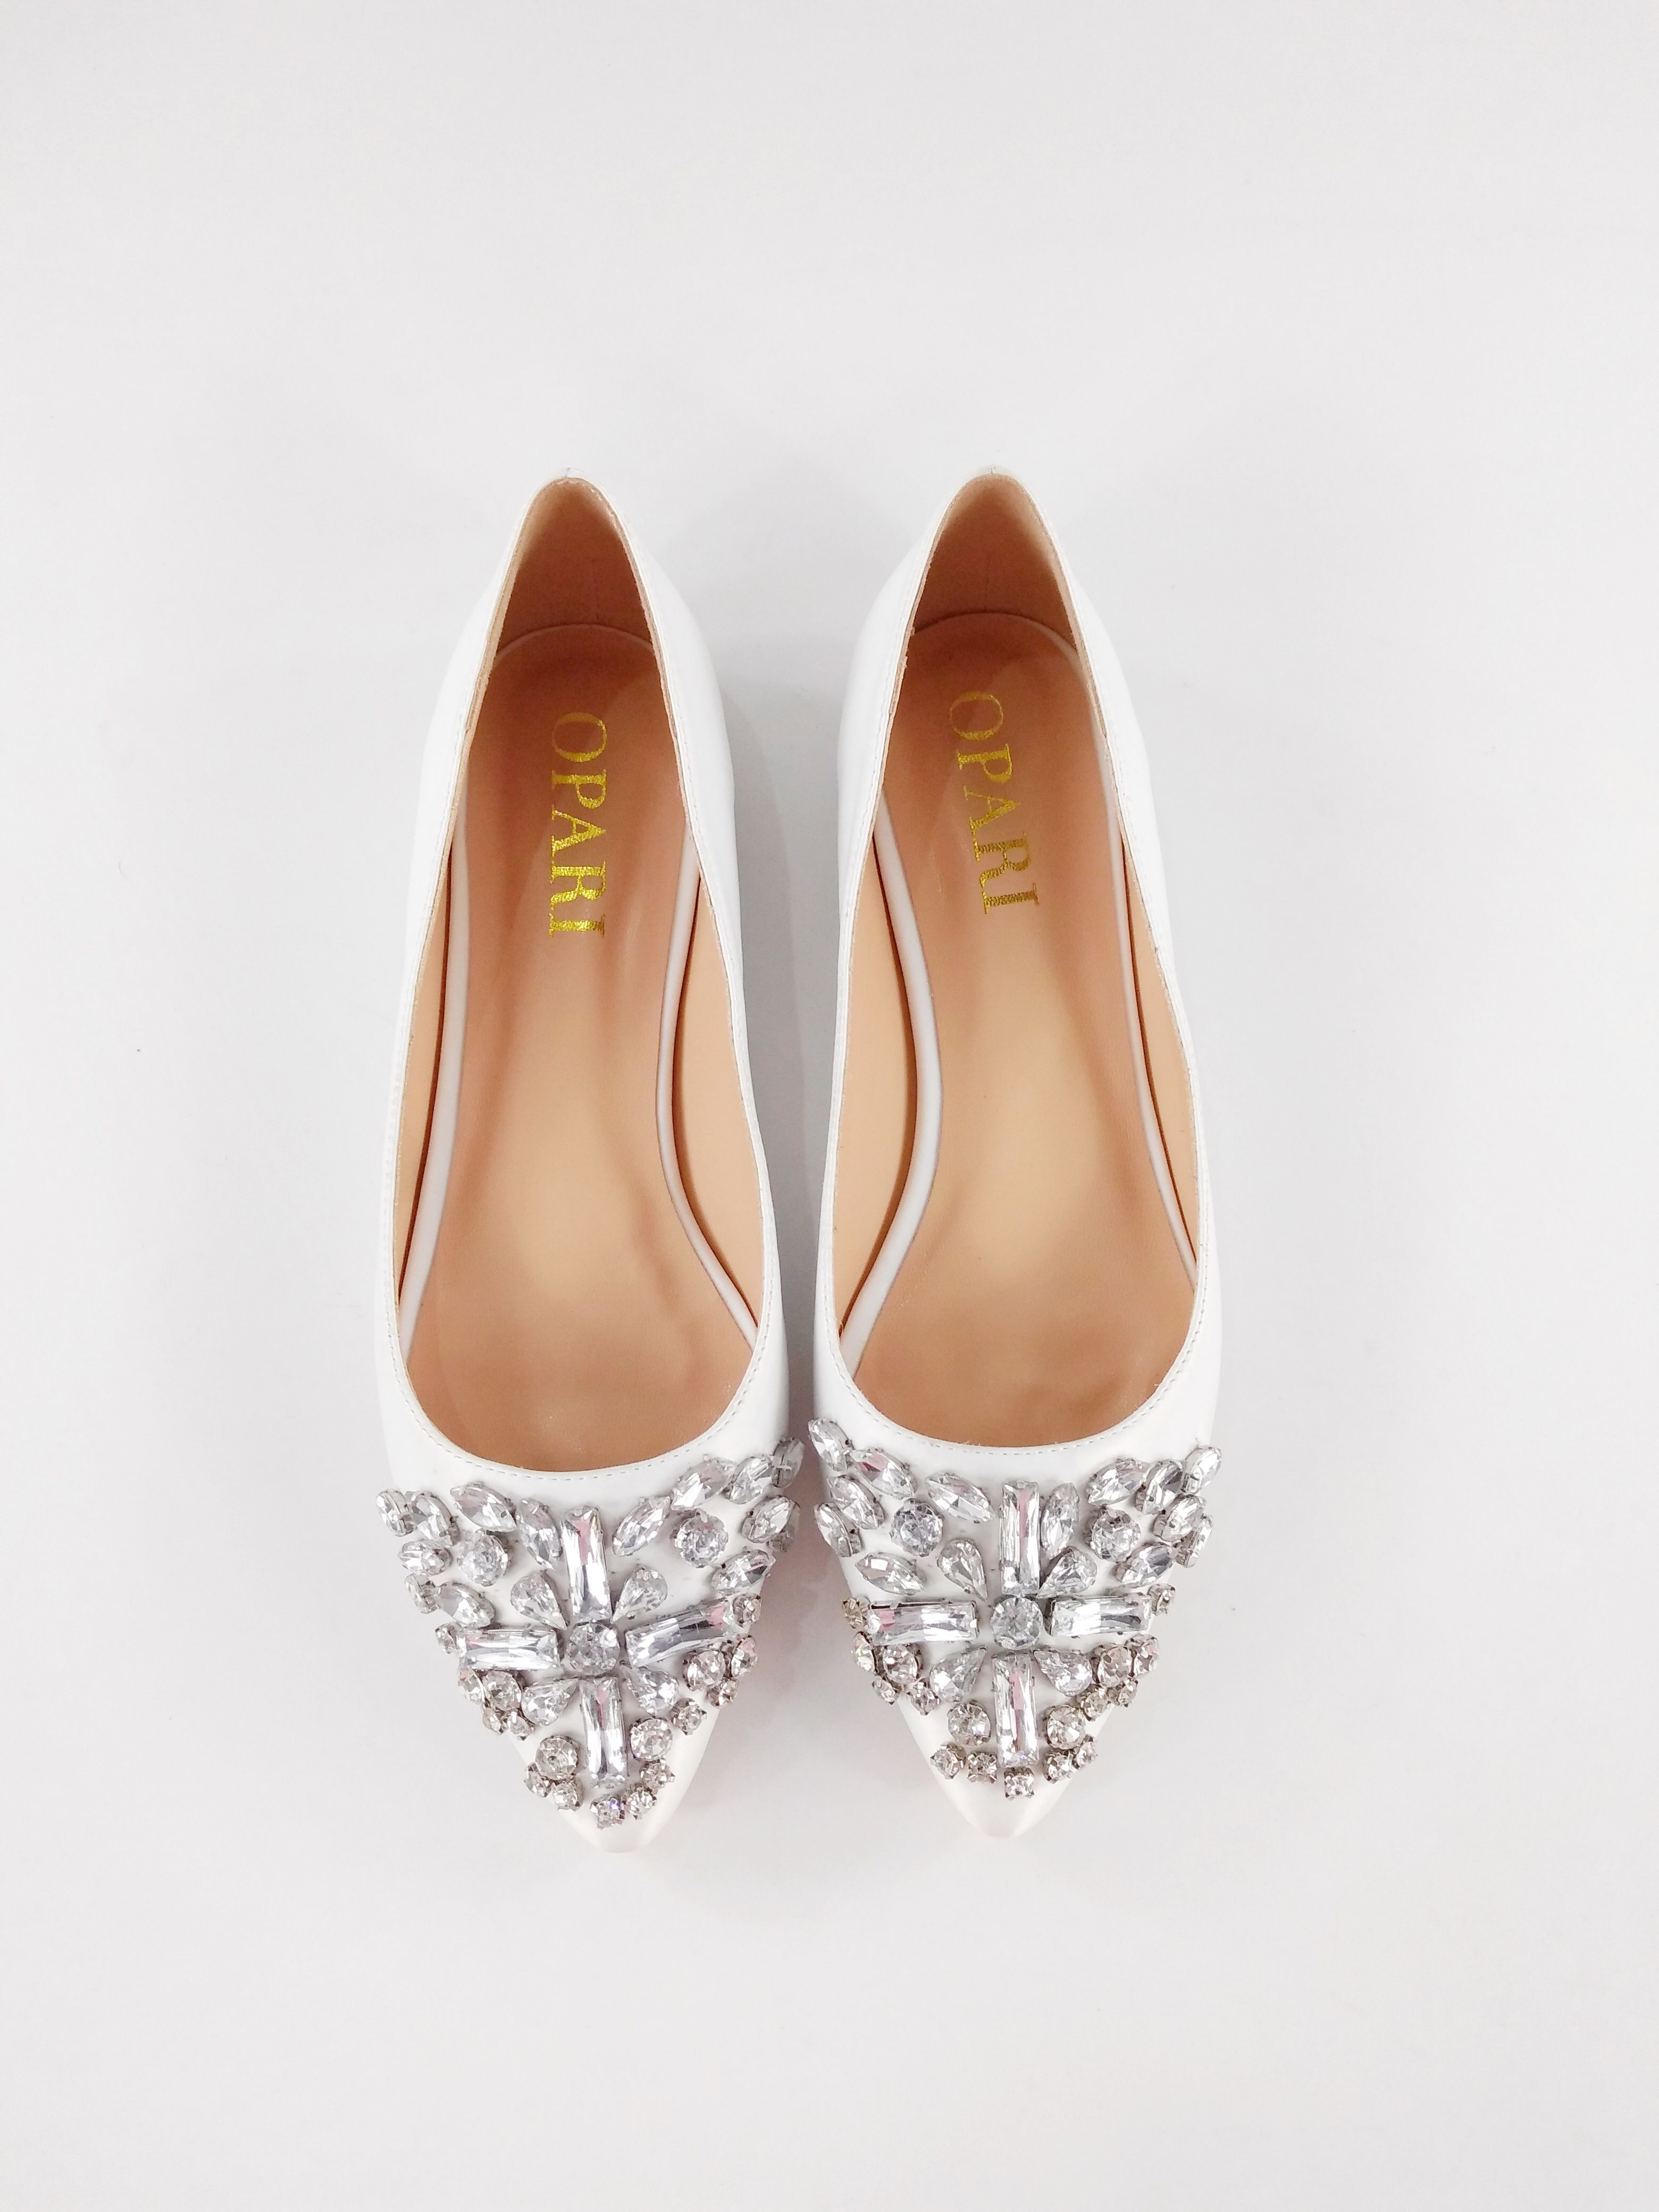 Flat Wedding Pumps With Toe Embellishment Oparishoes Flatweddingshoes White Wedding Shoes Flat Www Opari Wedding Pumps Wedding Shoes Flats Wedding Shoes